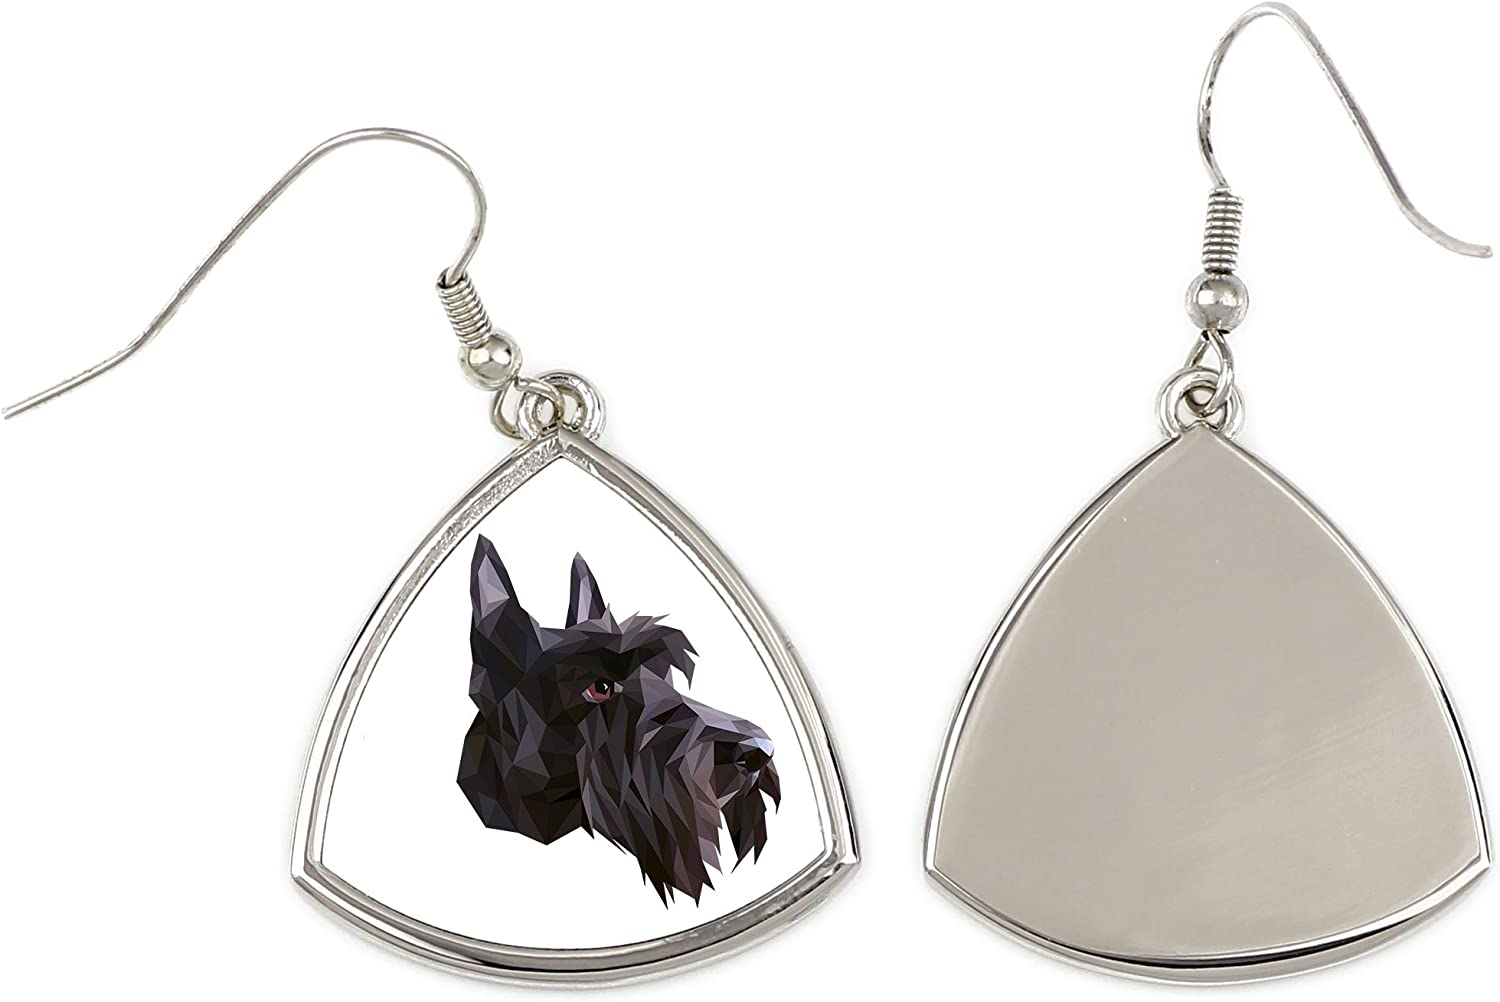 geometric collection of earrings with purebred dog Scottish Terrier